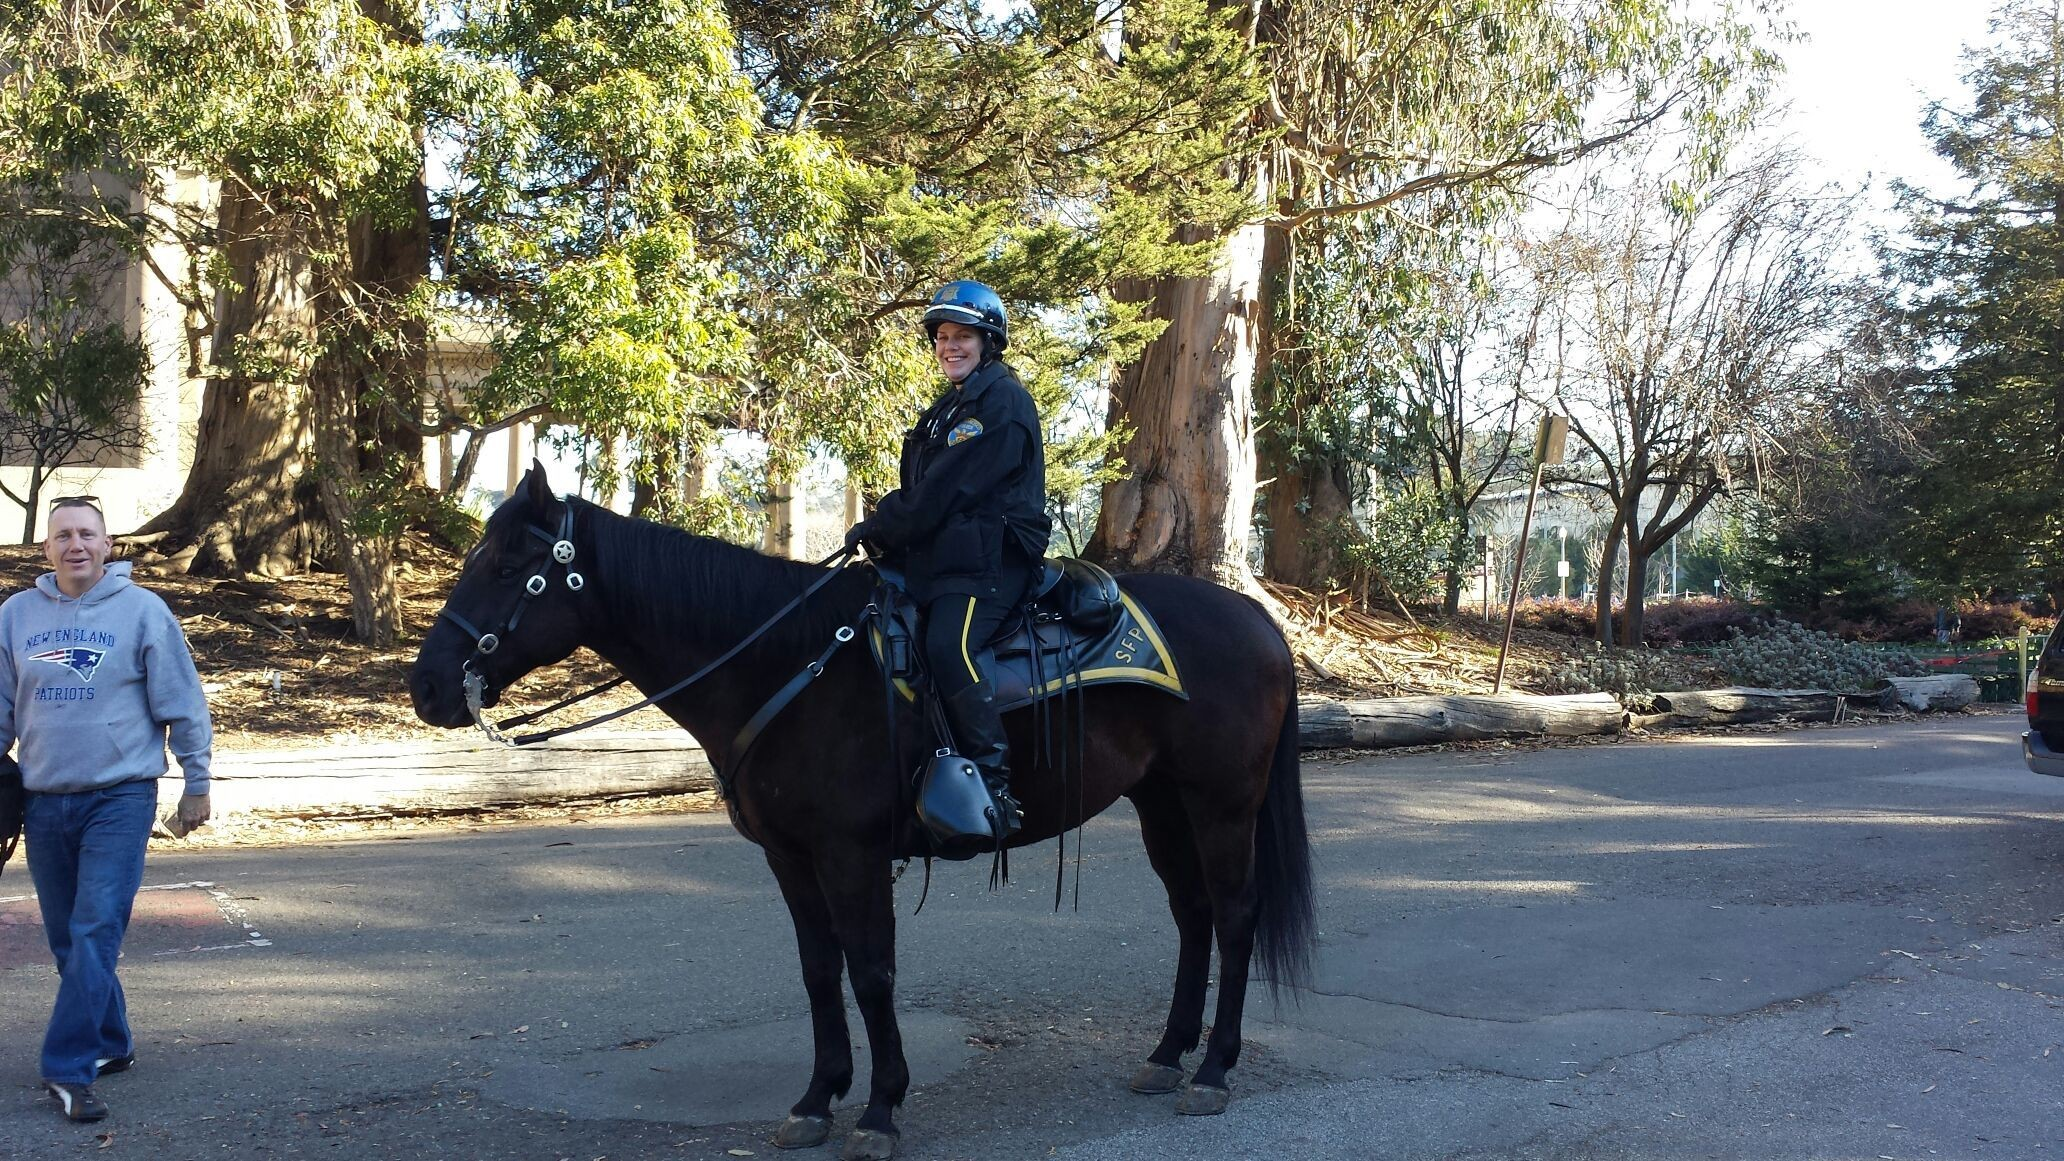 Bubba the Police horse in Golden Gate park. The policewoman riding Bubba has been in the SFPD for 28 years.